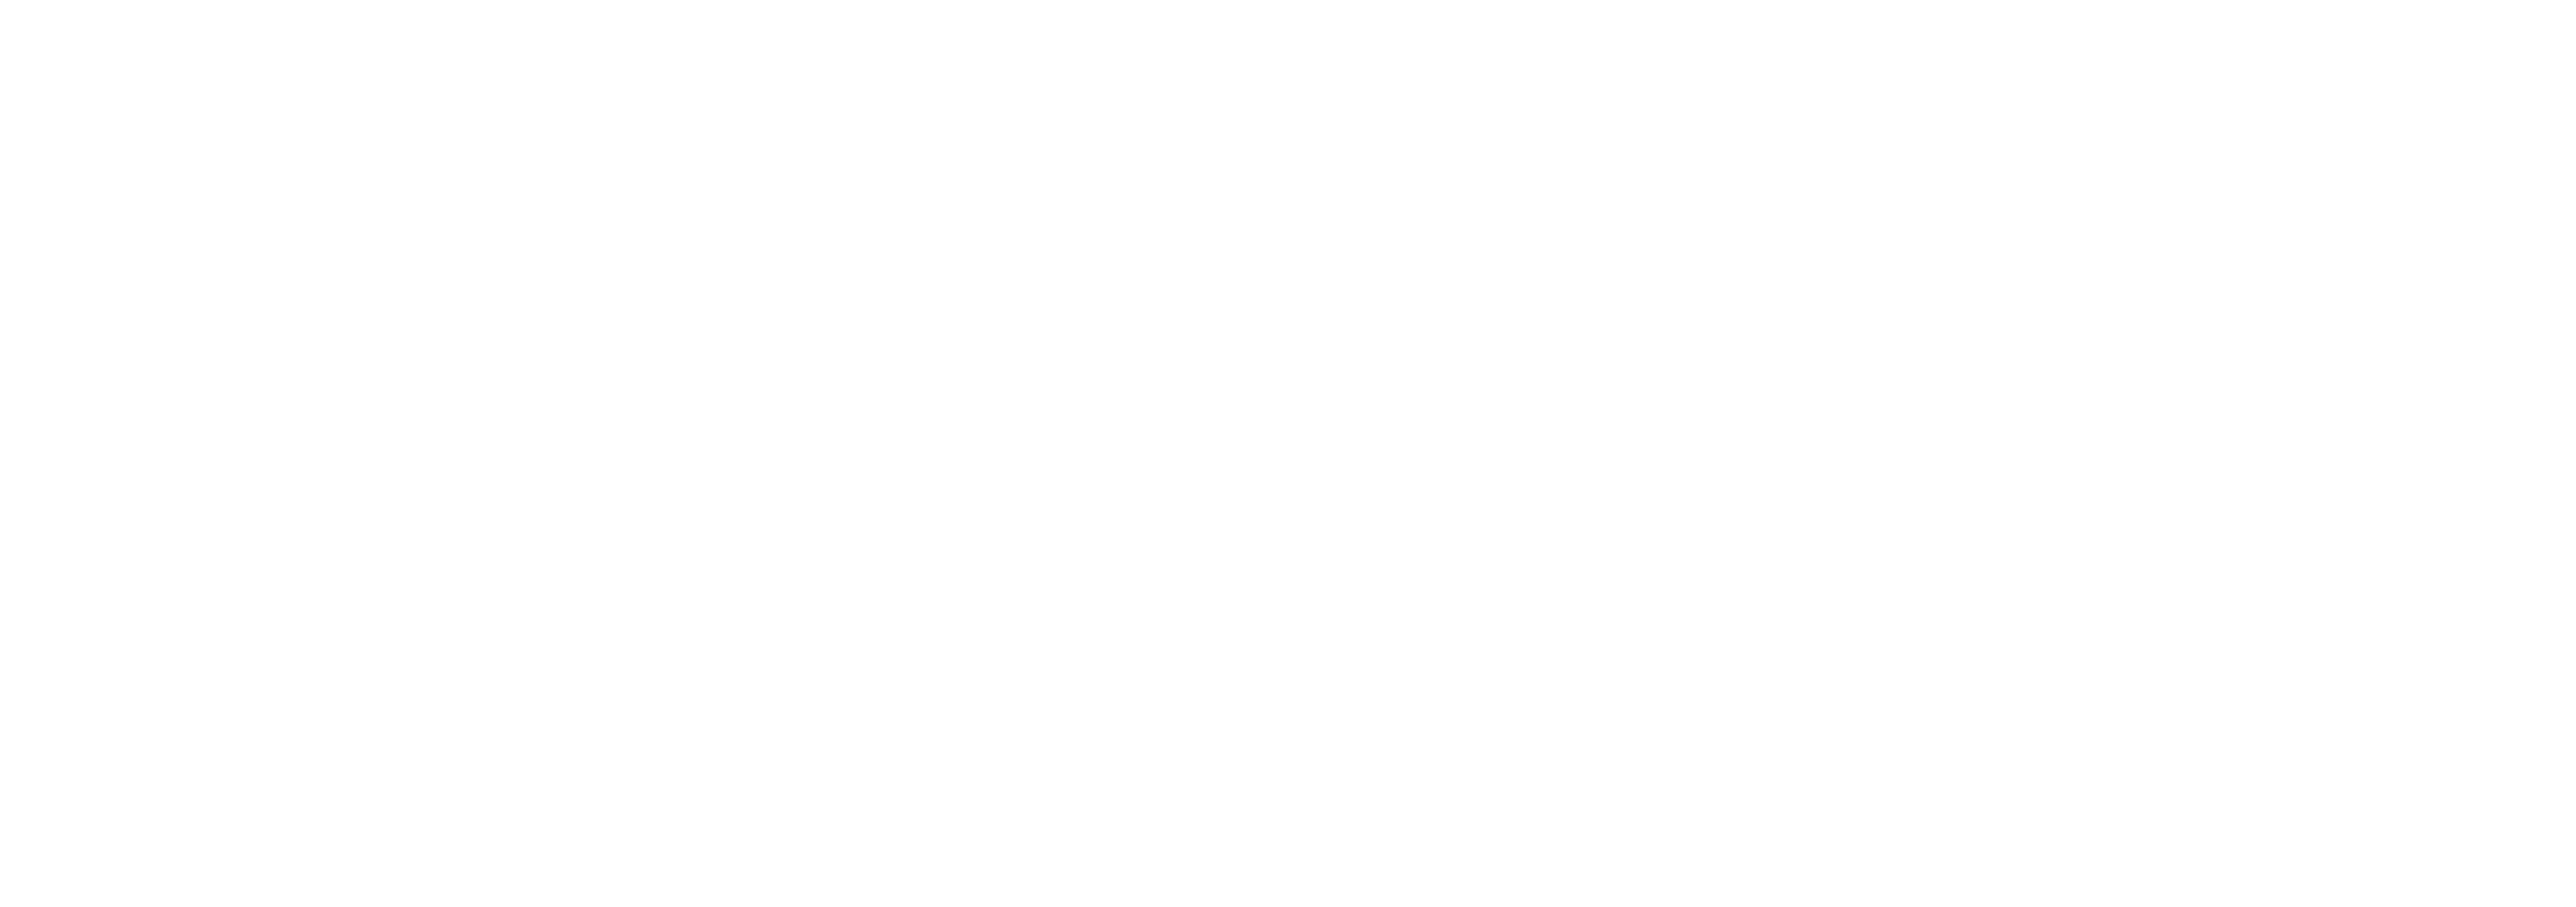 Longest Intermission, Ever - We miss you and can't wait until we can all be together again. In the meantime, please check out our virtual programs. The show will go on...